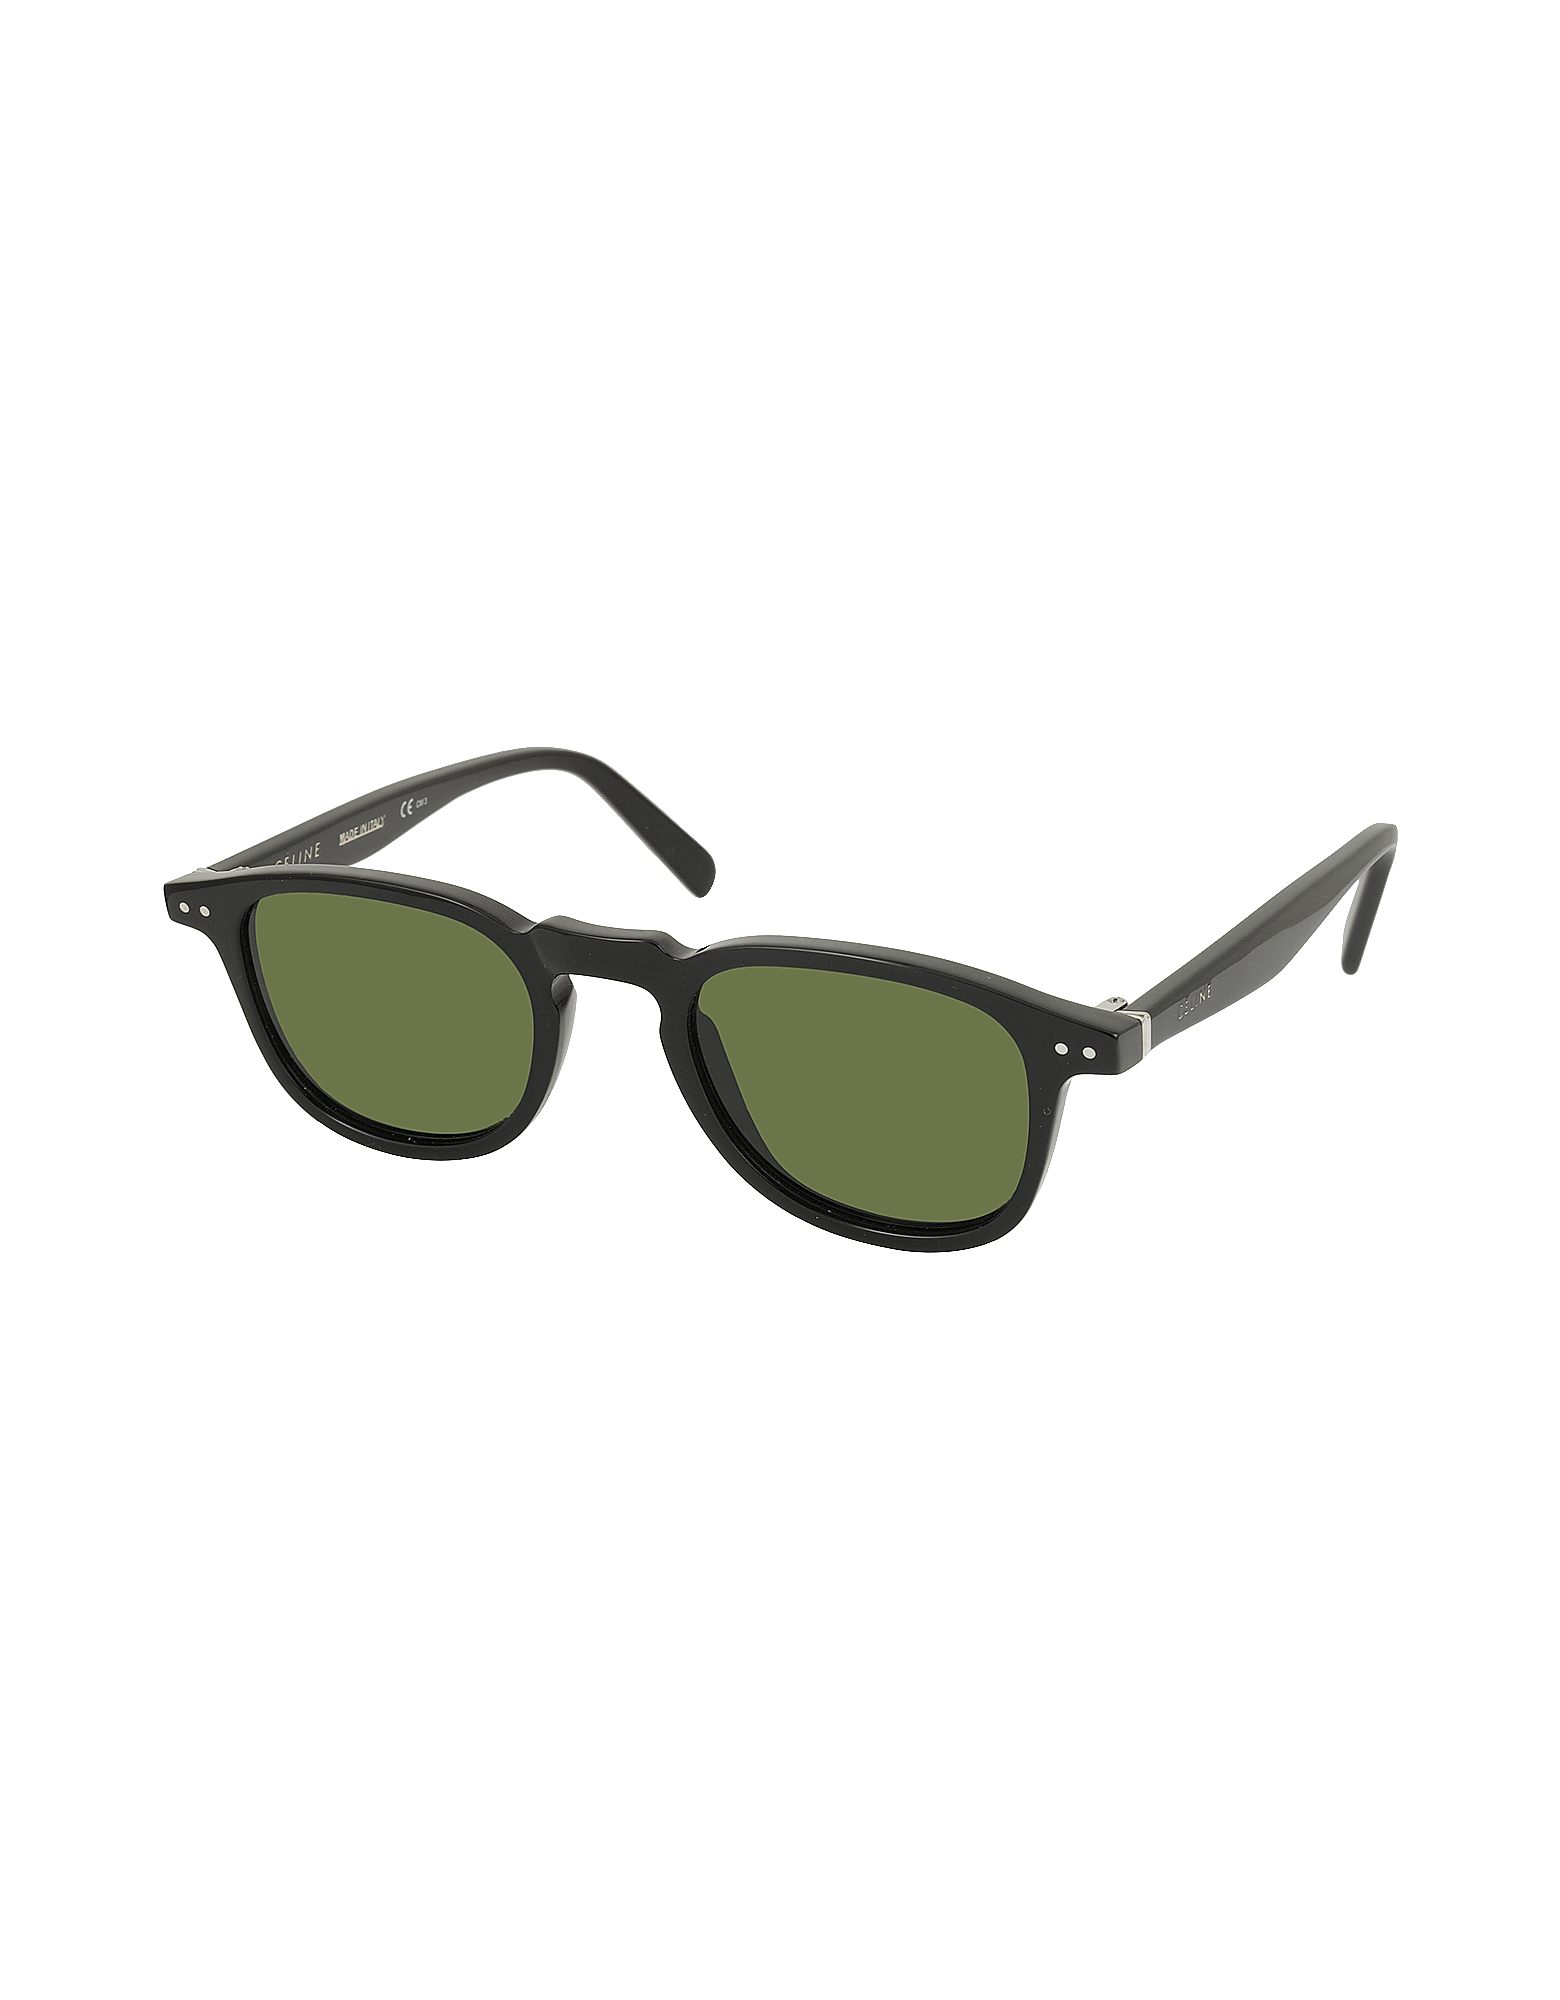 FREDDY CL 41400/S 8071E Black Acetate Square Frame Unisex Sunglasses от Forzieri.com INT